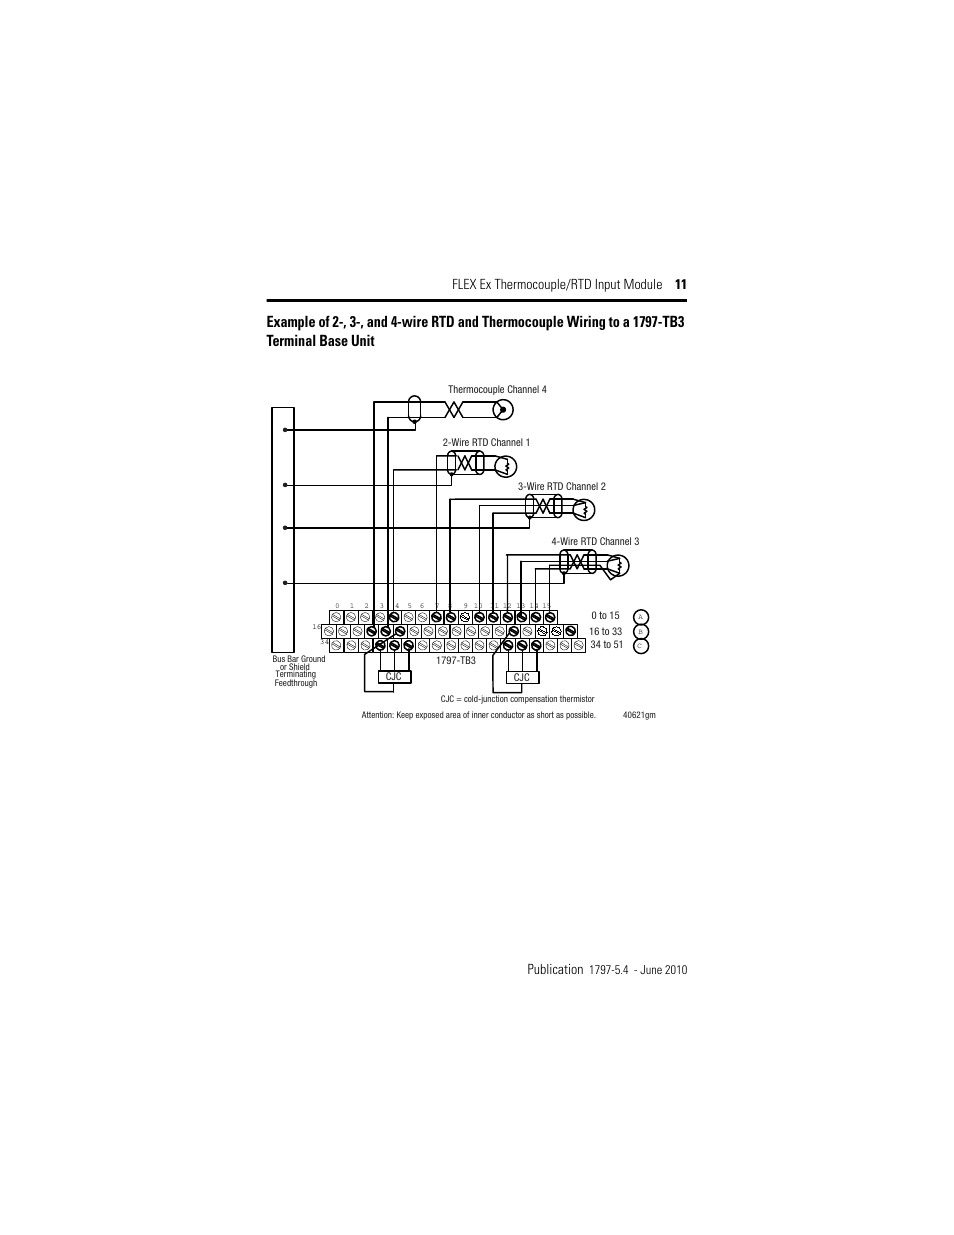 hight resolution of rockwell automation 1797 irt8 flex ex thermocouple rtd module user manual page 11 32